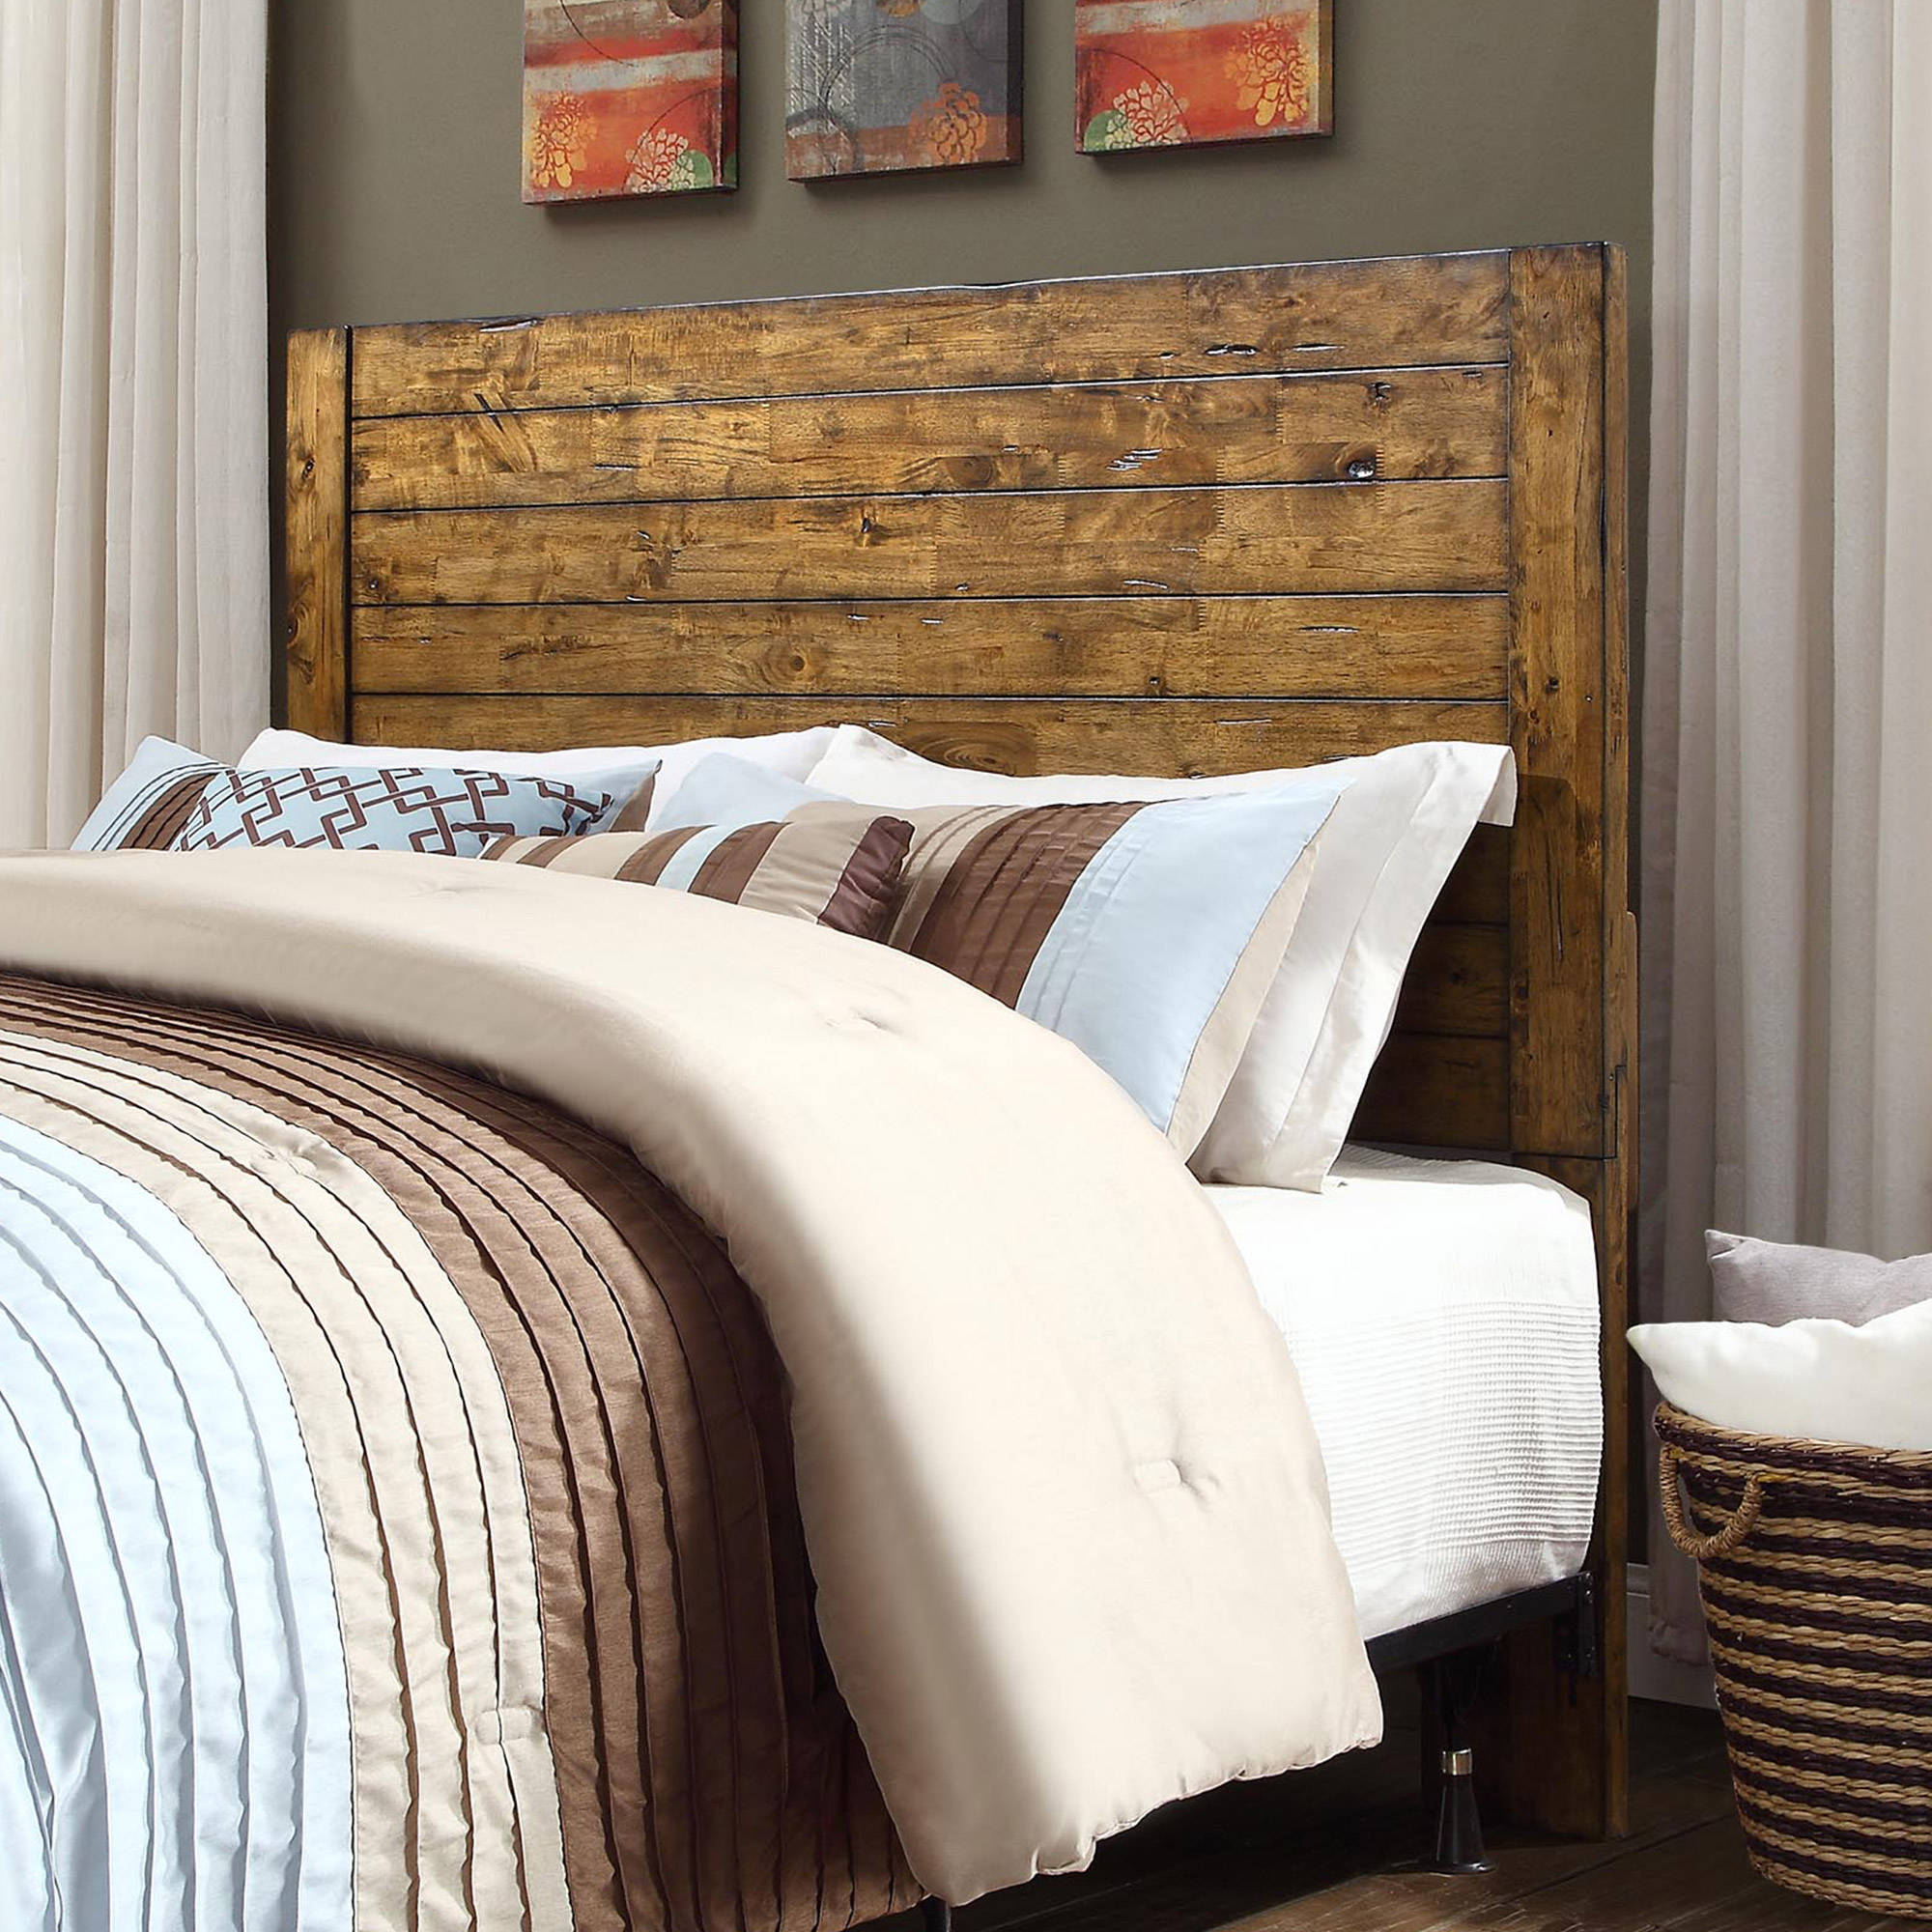 Better Homes and Gardens Bryant Full/Queen Solid Wood Headboard, Rustic  Brown Finish - Traveller Location